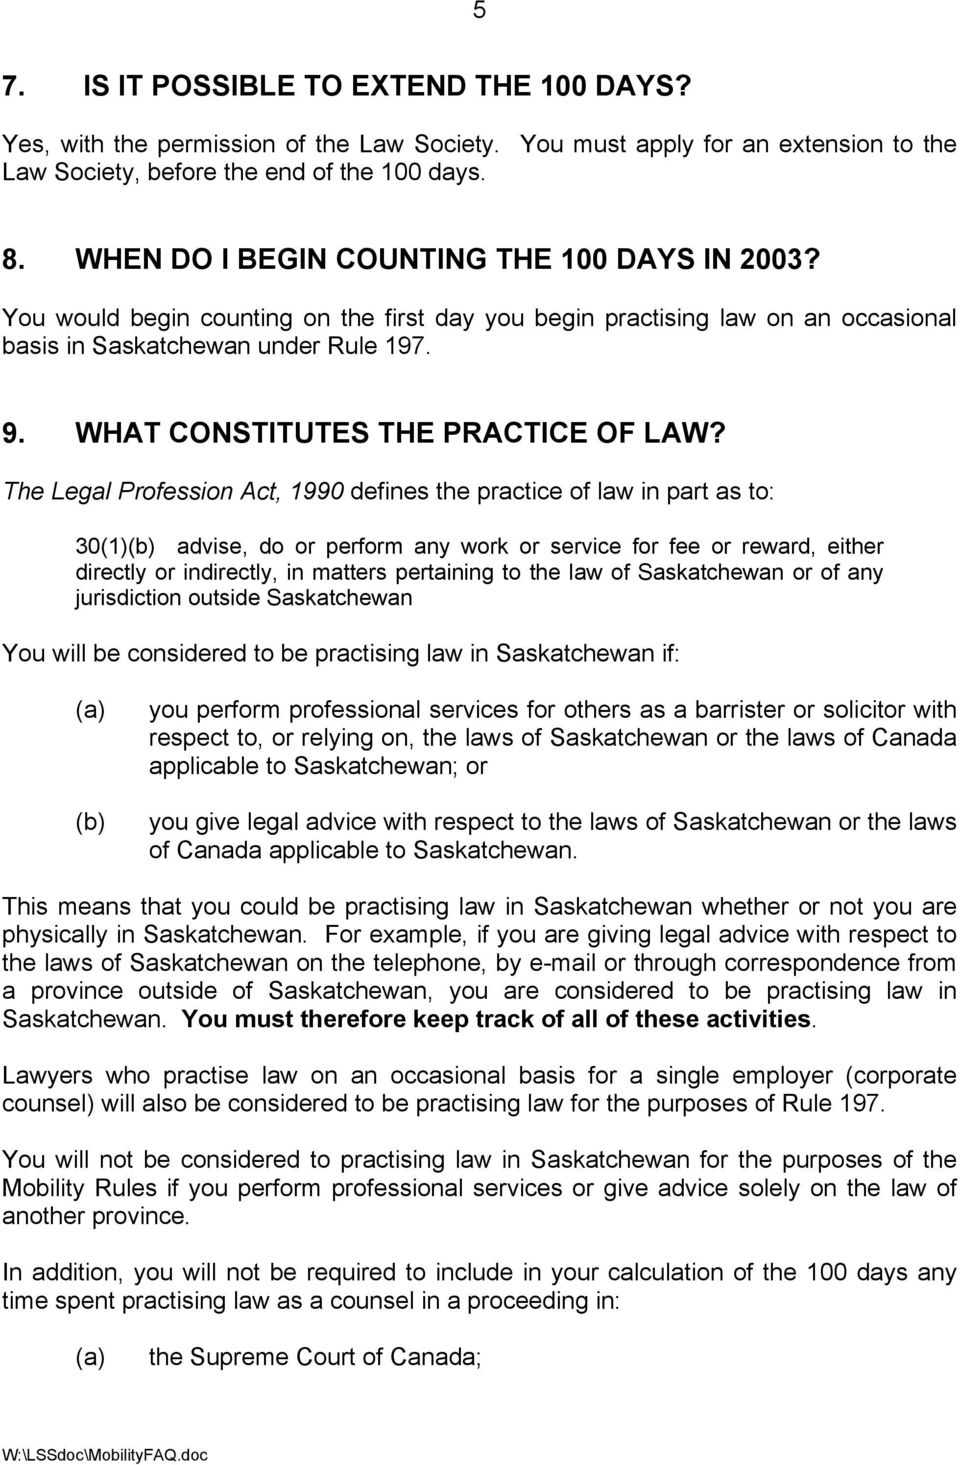 WHAT CONSTITUTES THE PRACTICE OF LAW?